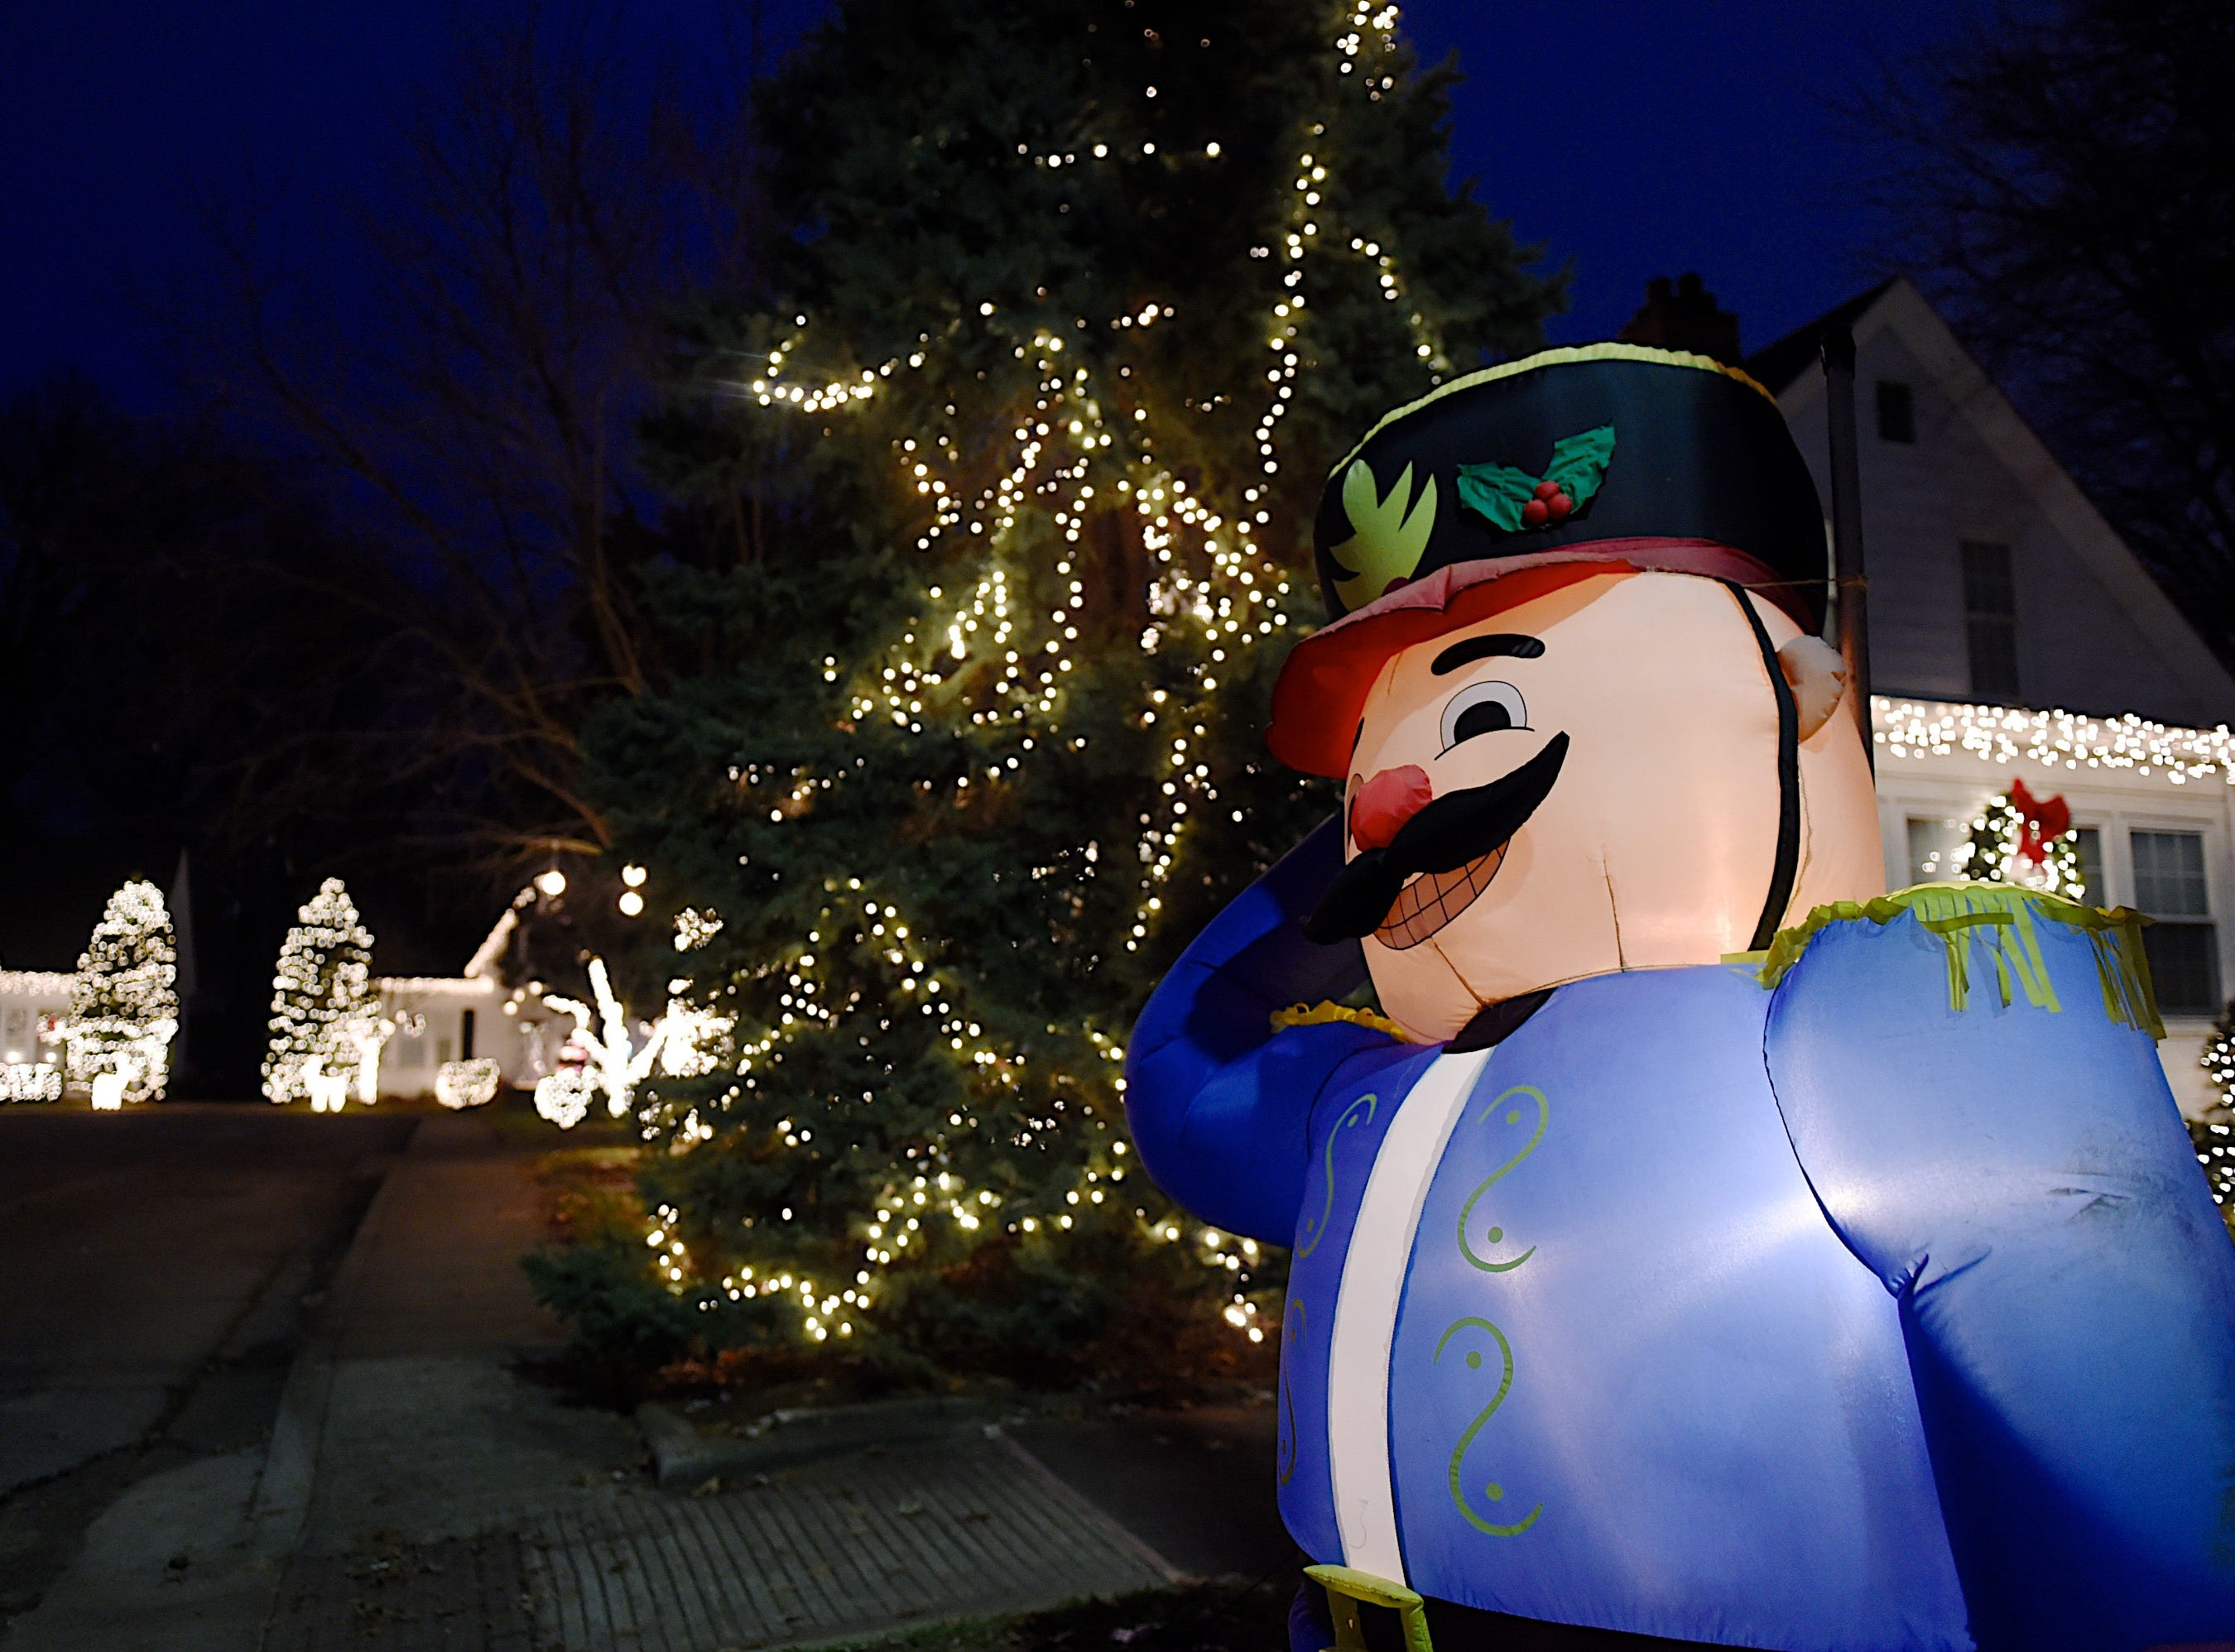 One of the two guards welcomes visitors to Colonial Court's decorated homes off North Main Street Tuesday evening, December 9, 2014.